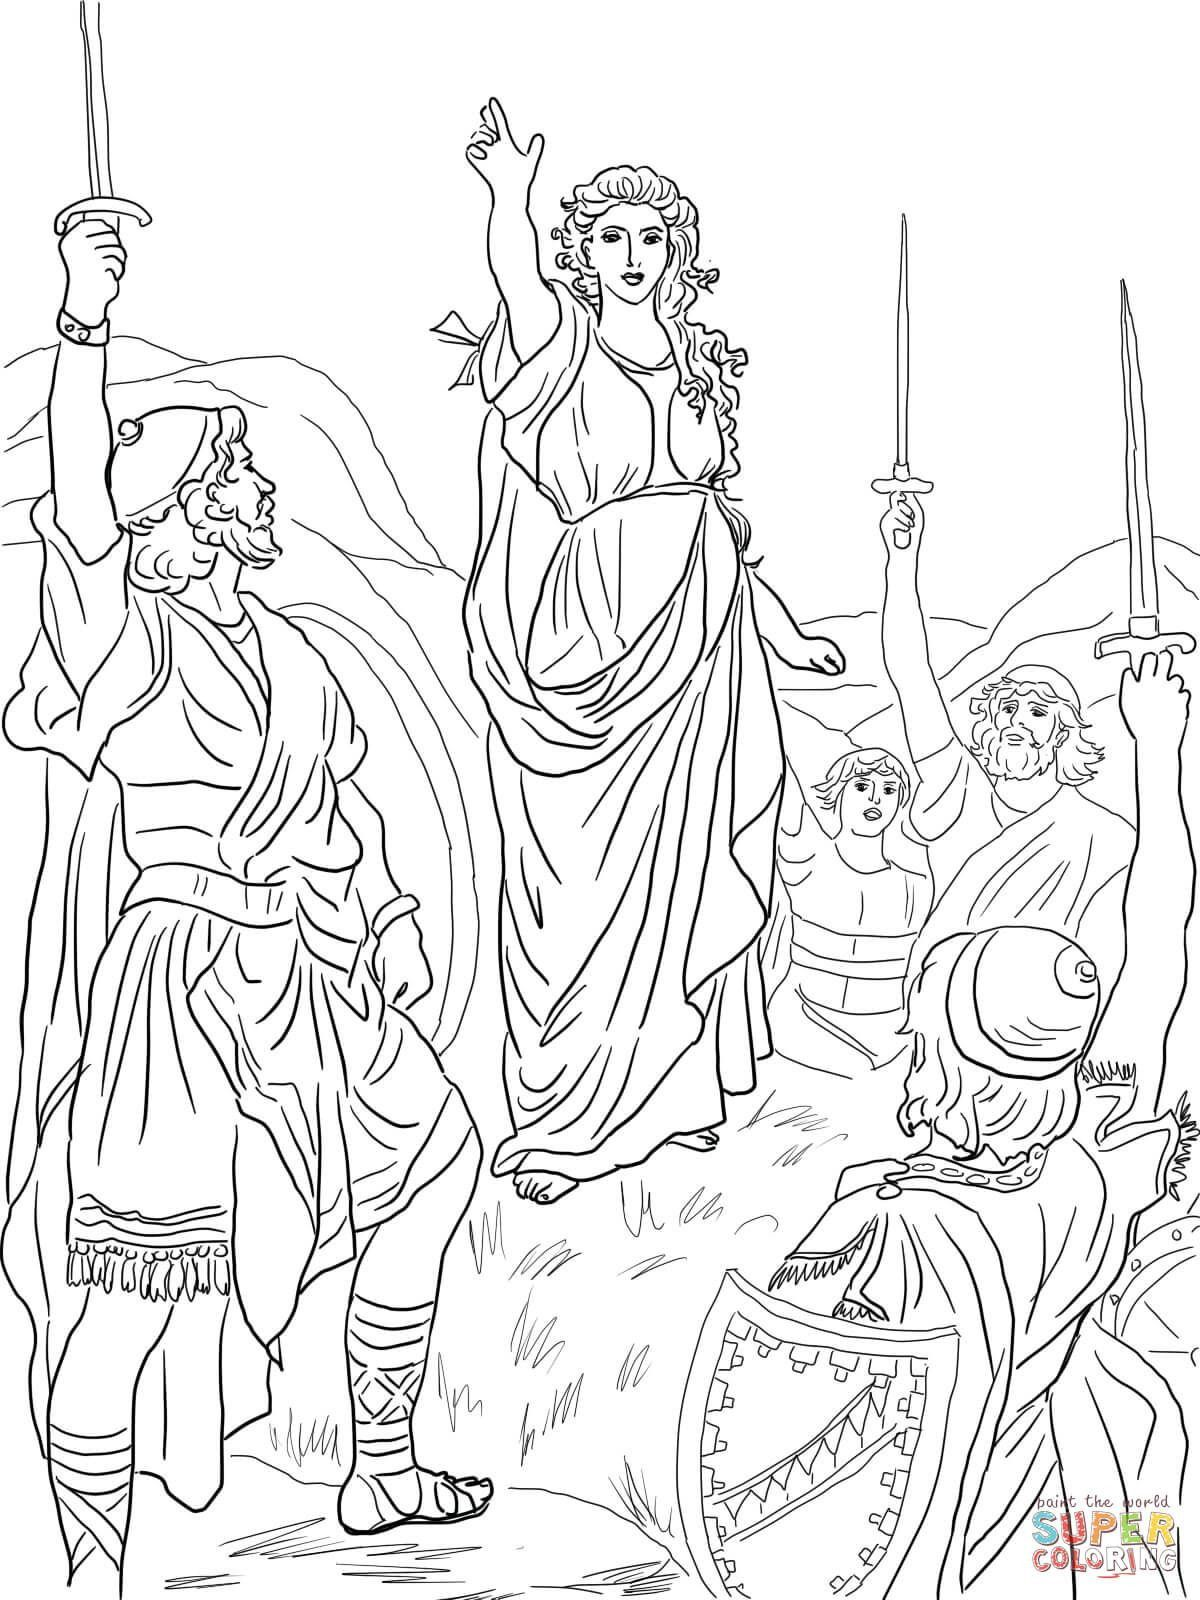 In Israel Coloring Pages Bible Images Bible Coloring Pages